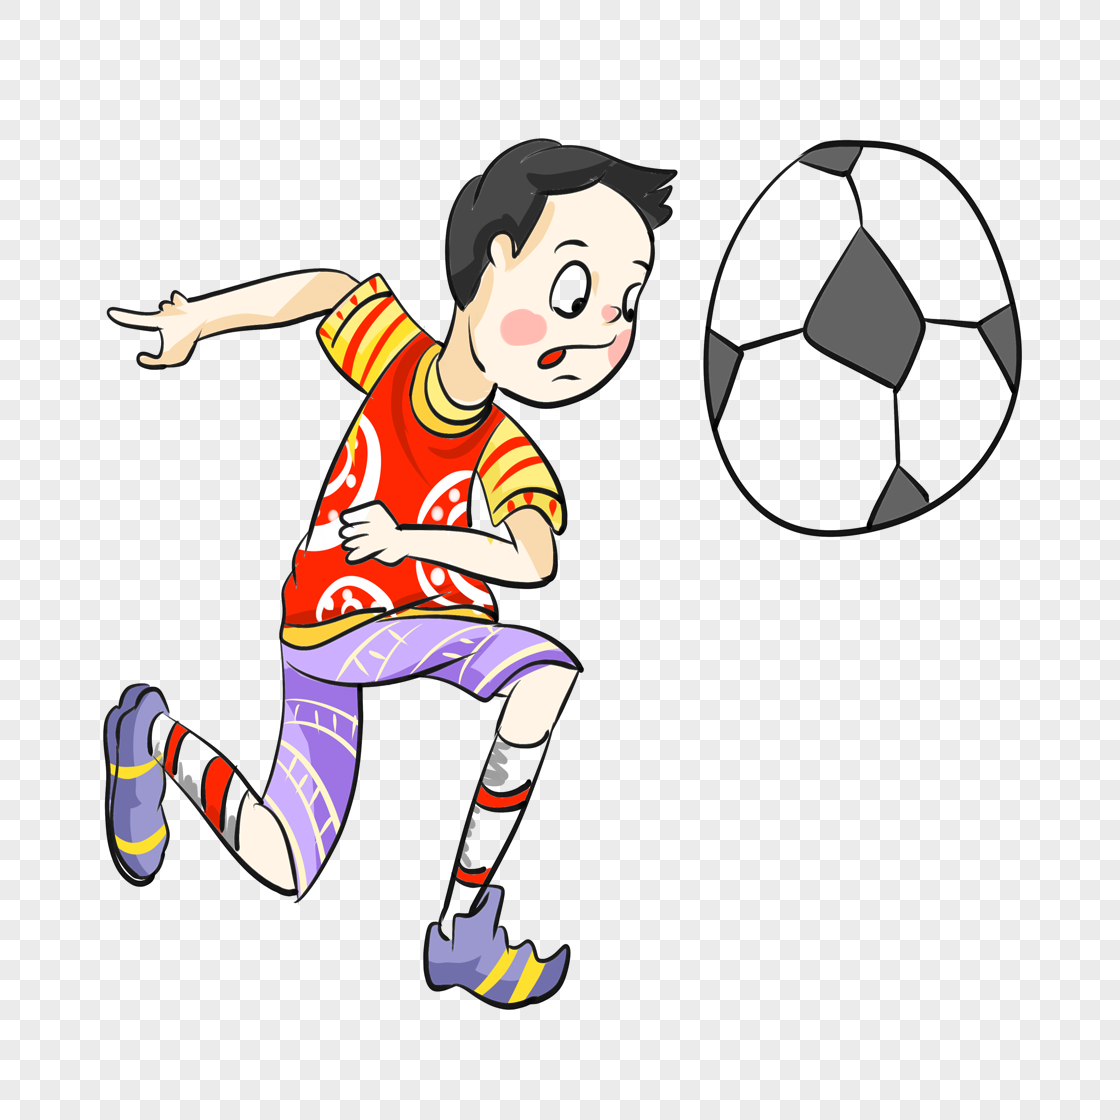 kicking a football boy png image picture free download